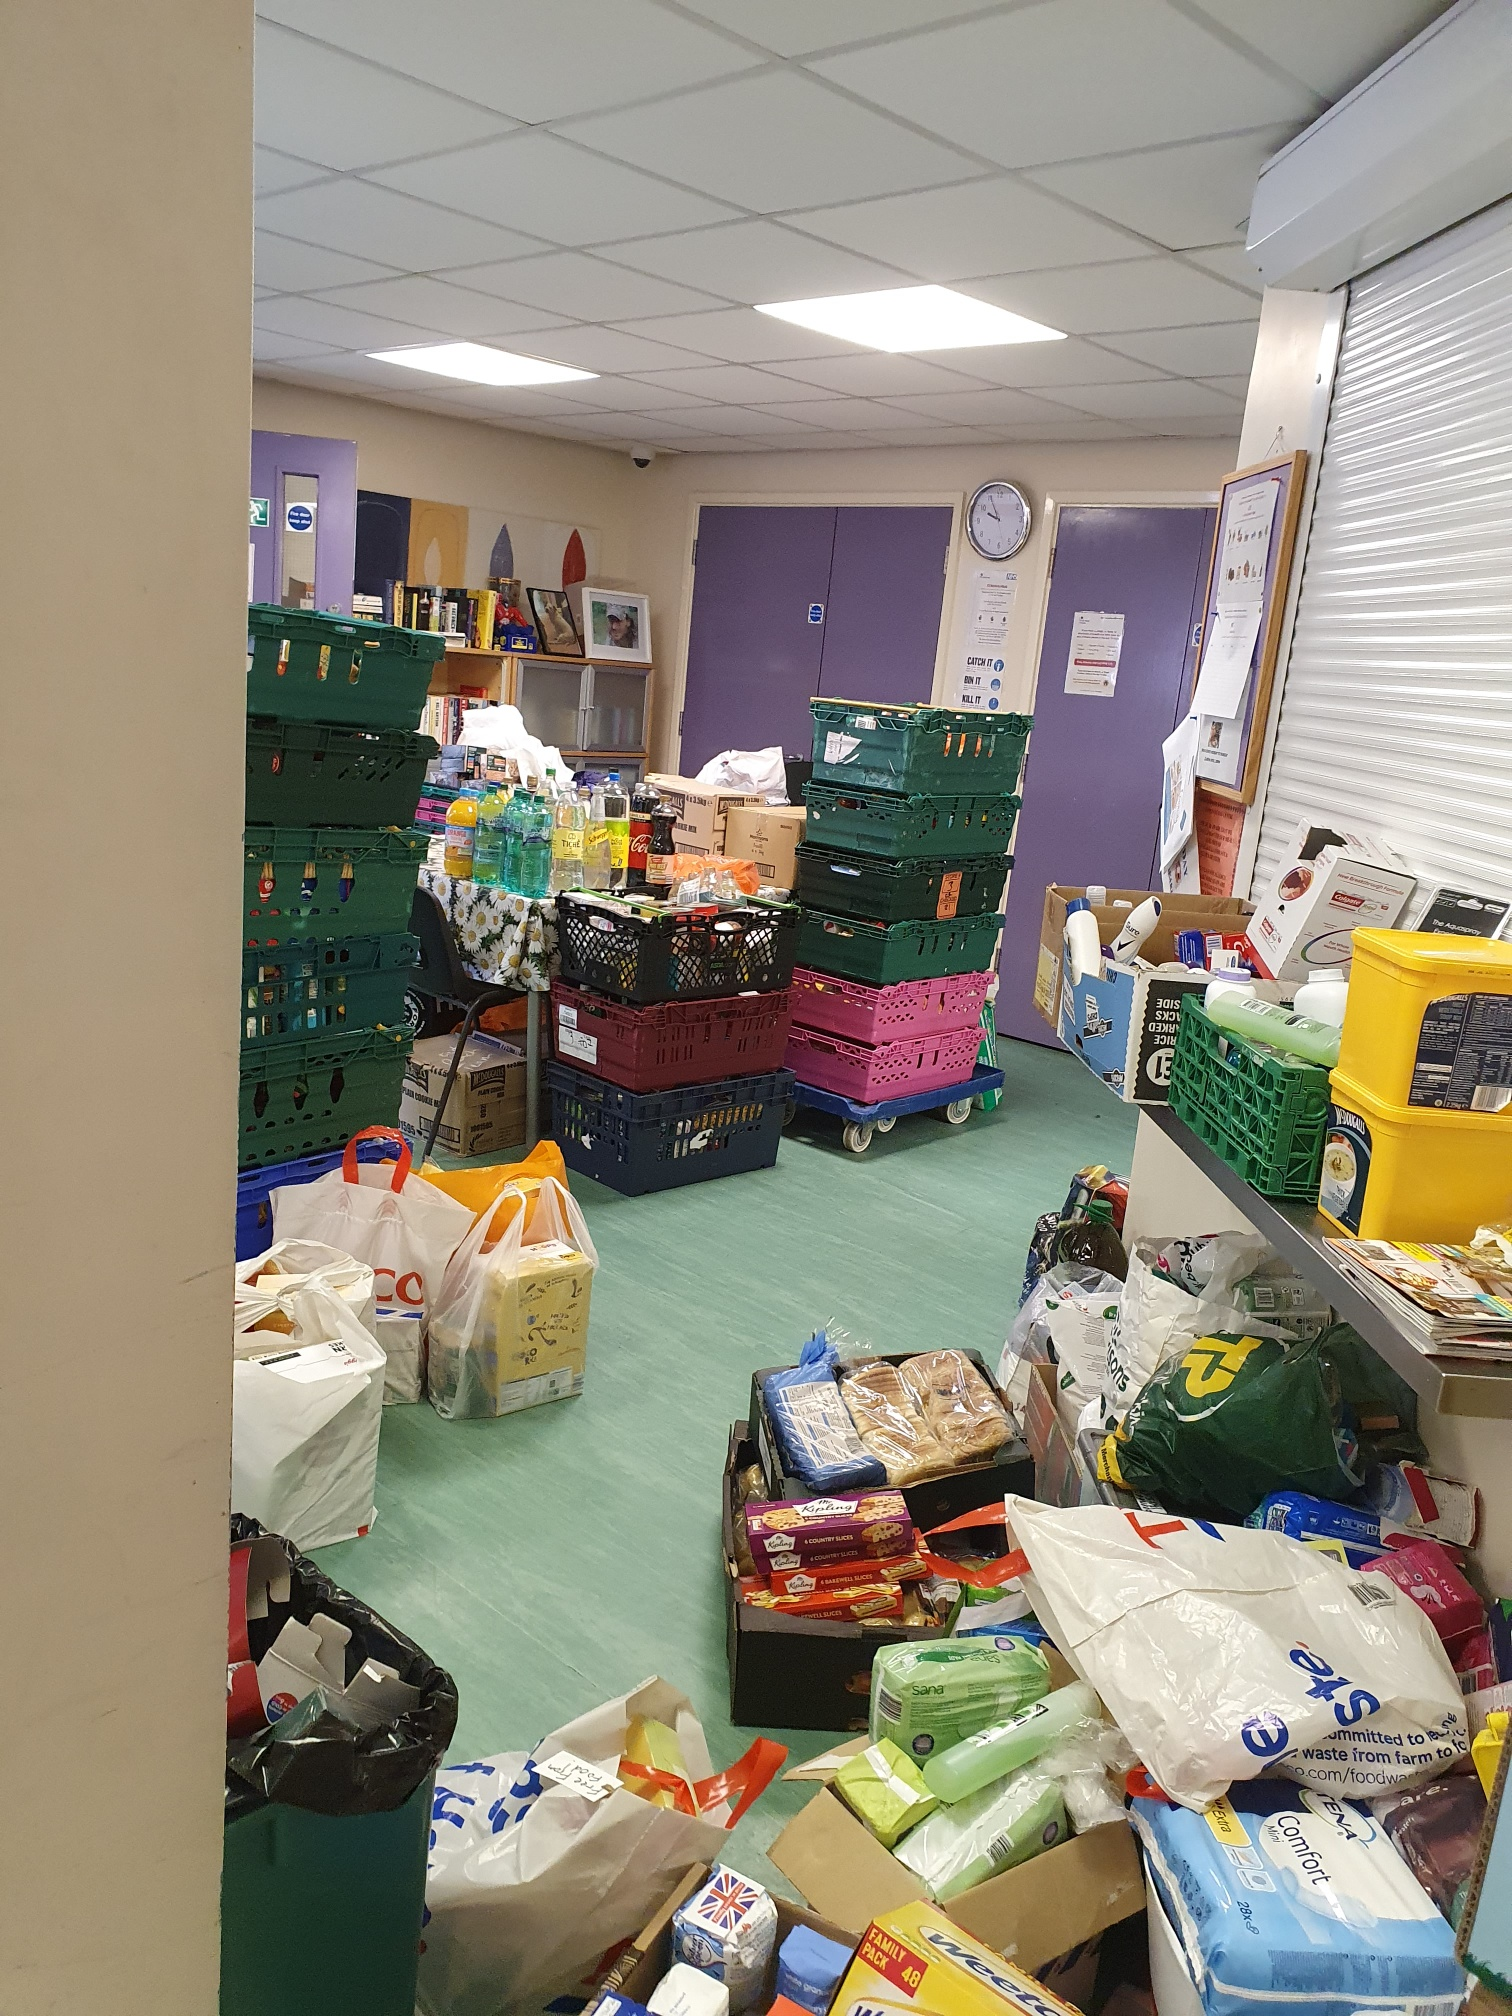 Donations to the Day Centre